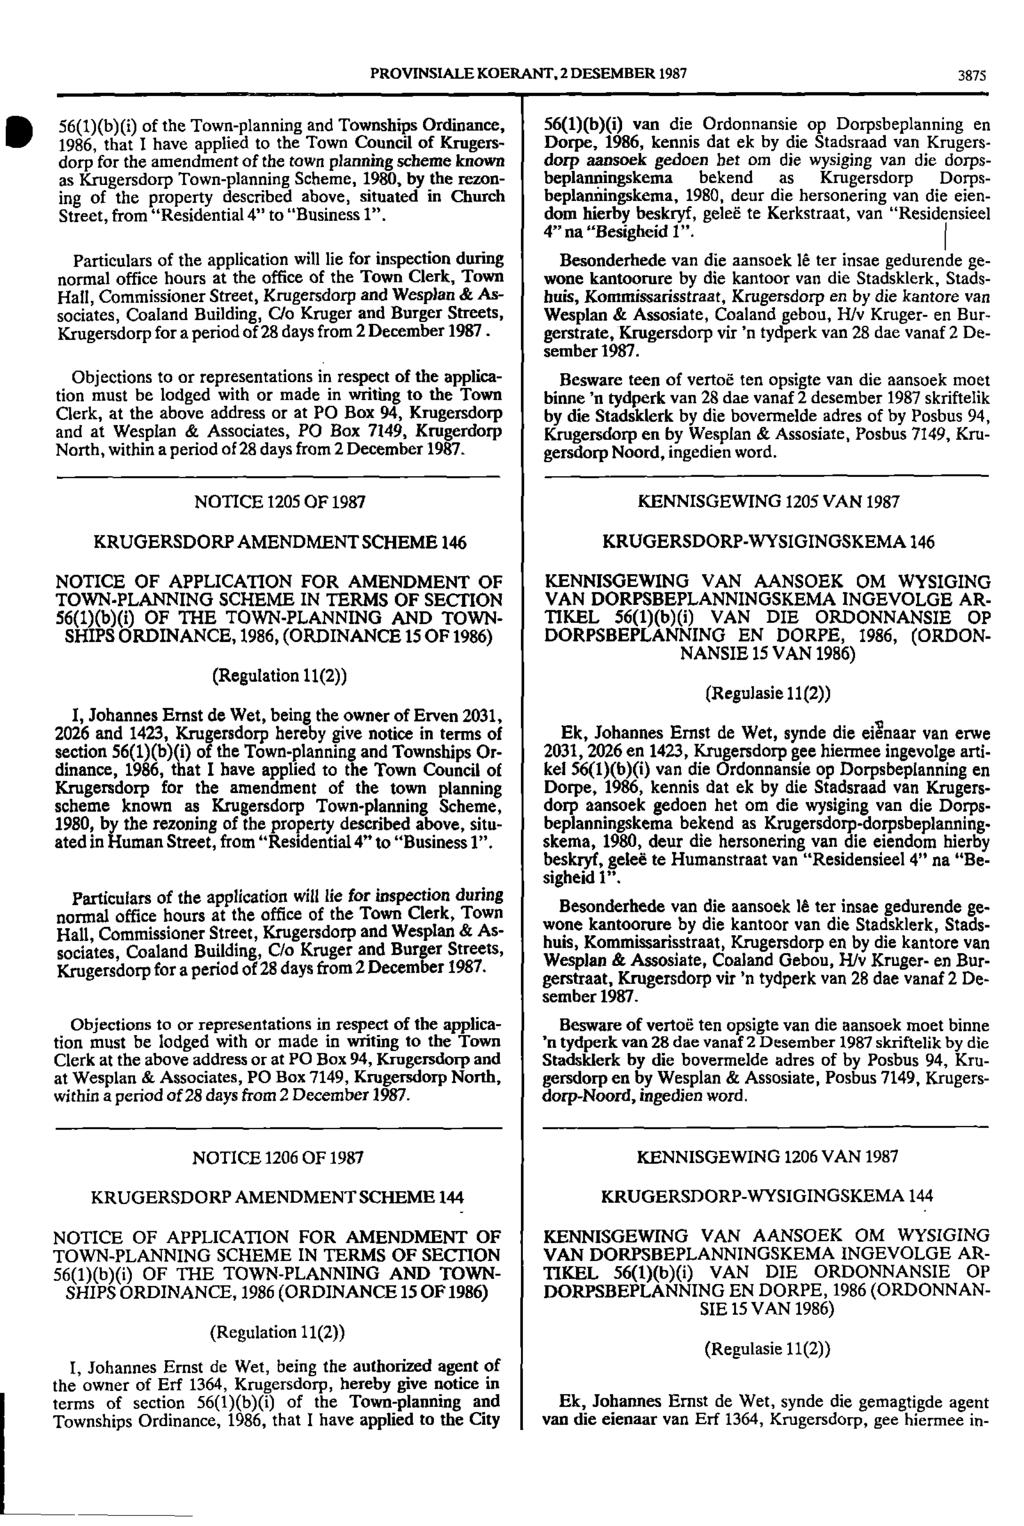 PROVINSIALE KOERANT, 2 DESEMBER 1987 3875 56(1)(b)(i) of the Townplanning and Townships Ordinance, 56(1)(b)(i) van die Ordonnansie op Dorpsbeplanning en 1986, that I have applied to the Town Council